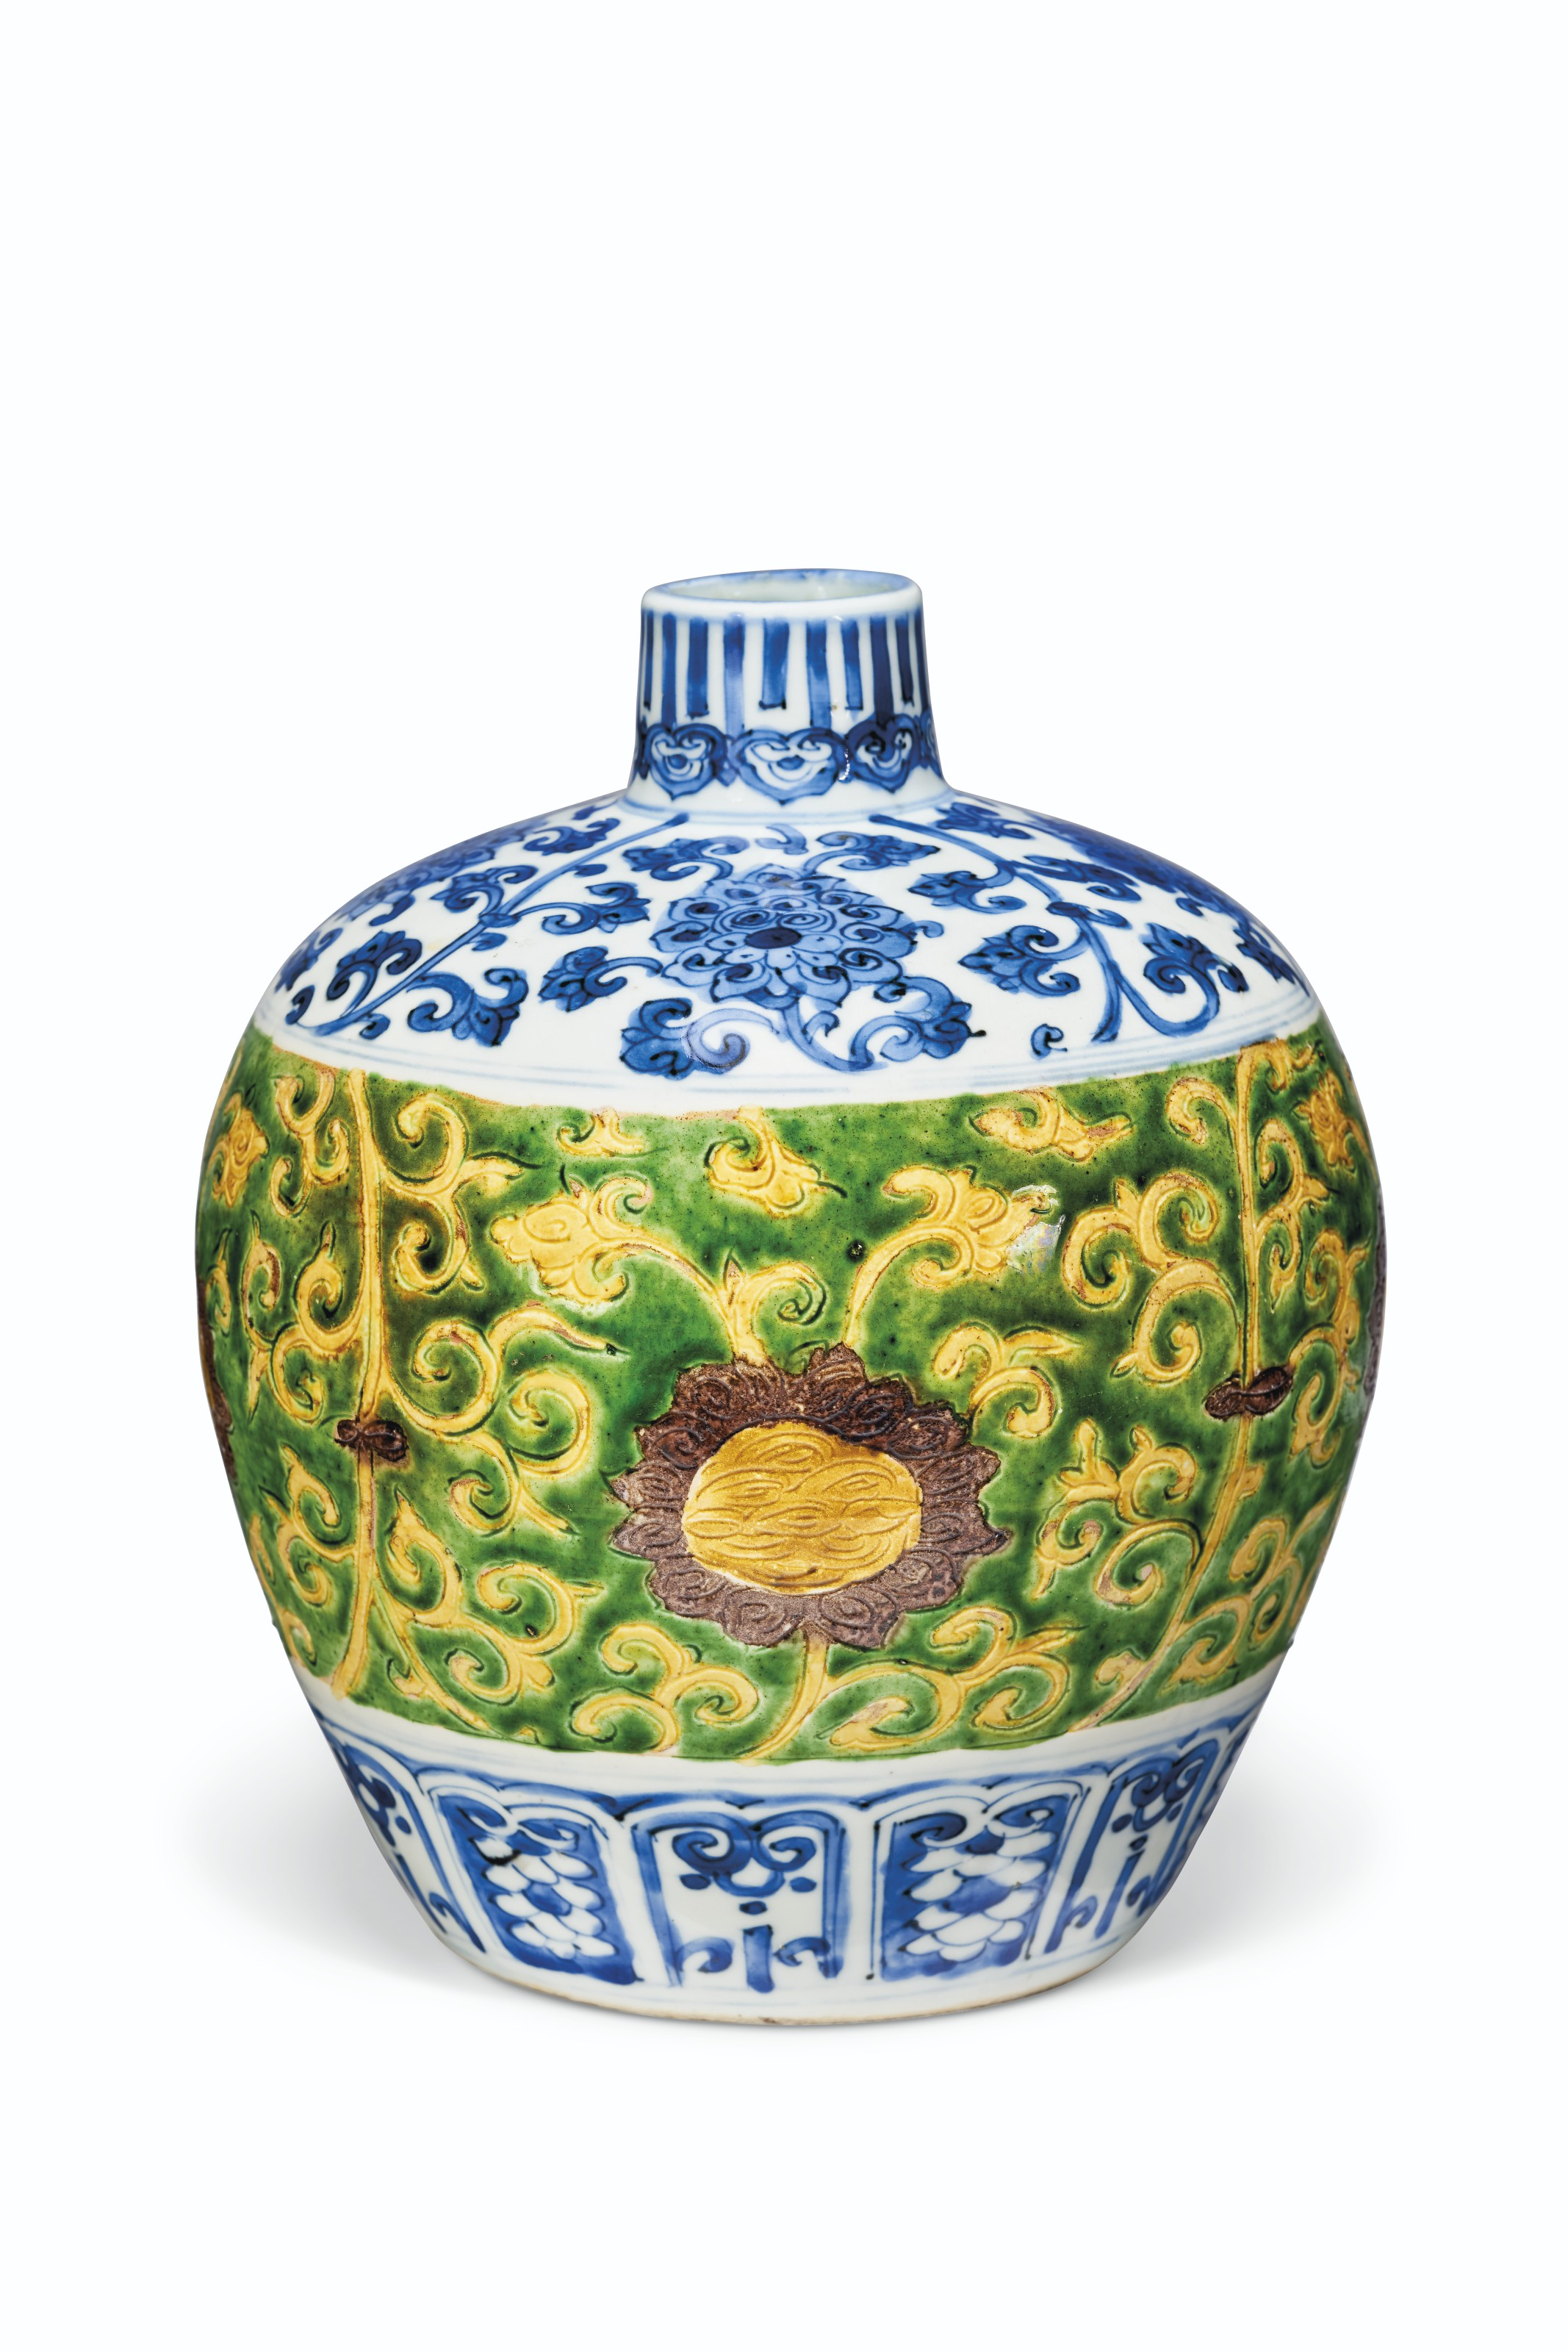 A RARE BLUE AND WHITE AND YELLOW, GREEN AND AUBERGINE-ENAMELED INCISED OVOID VASE